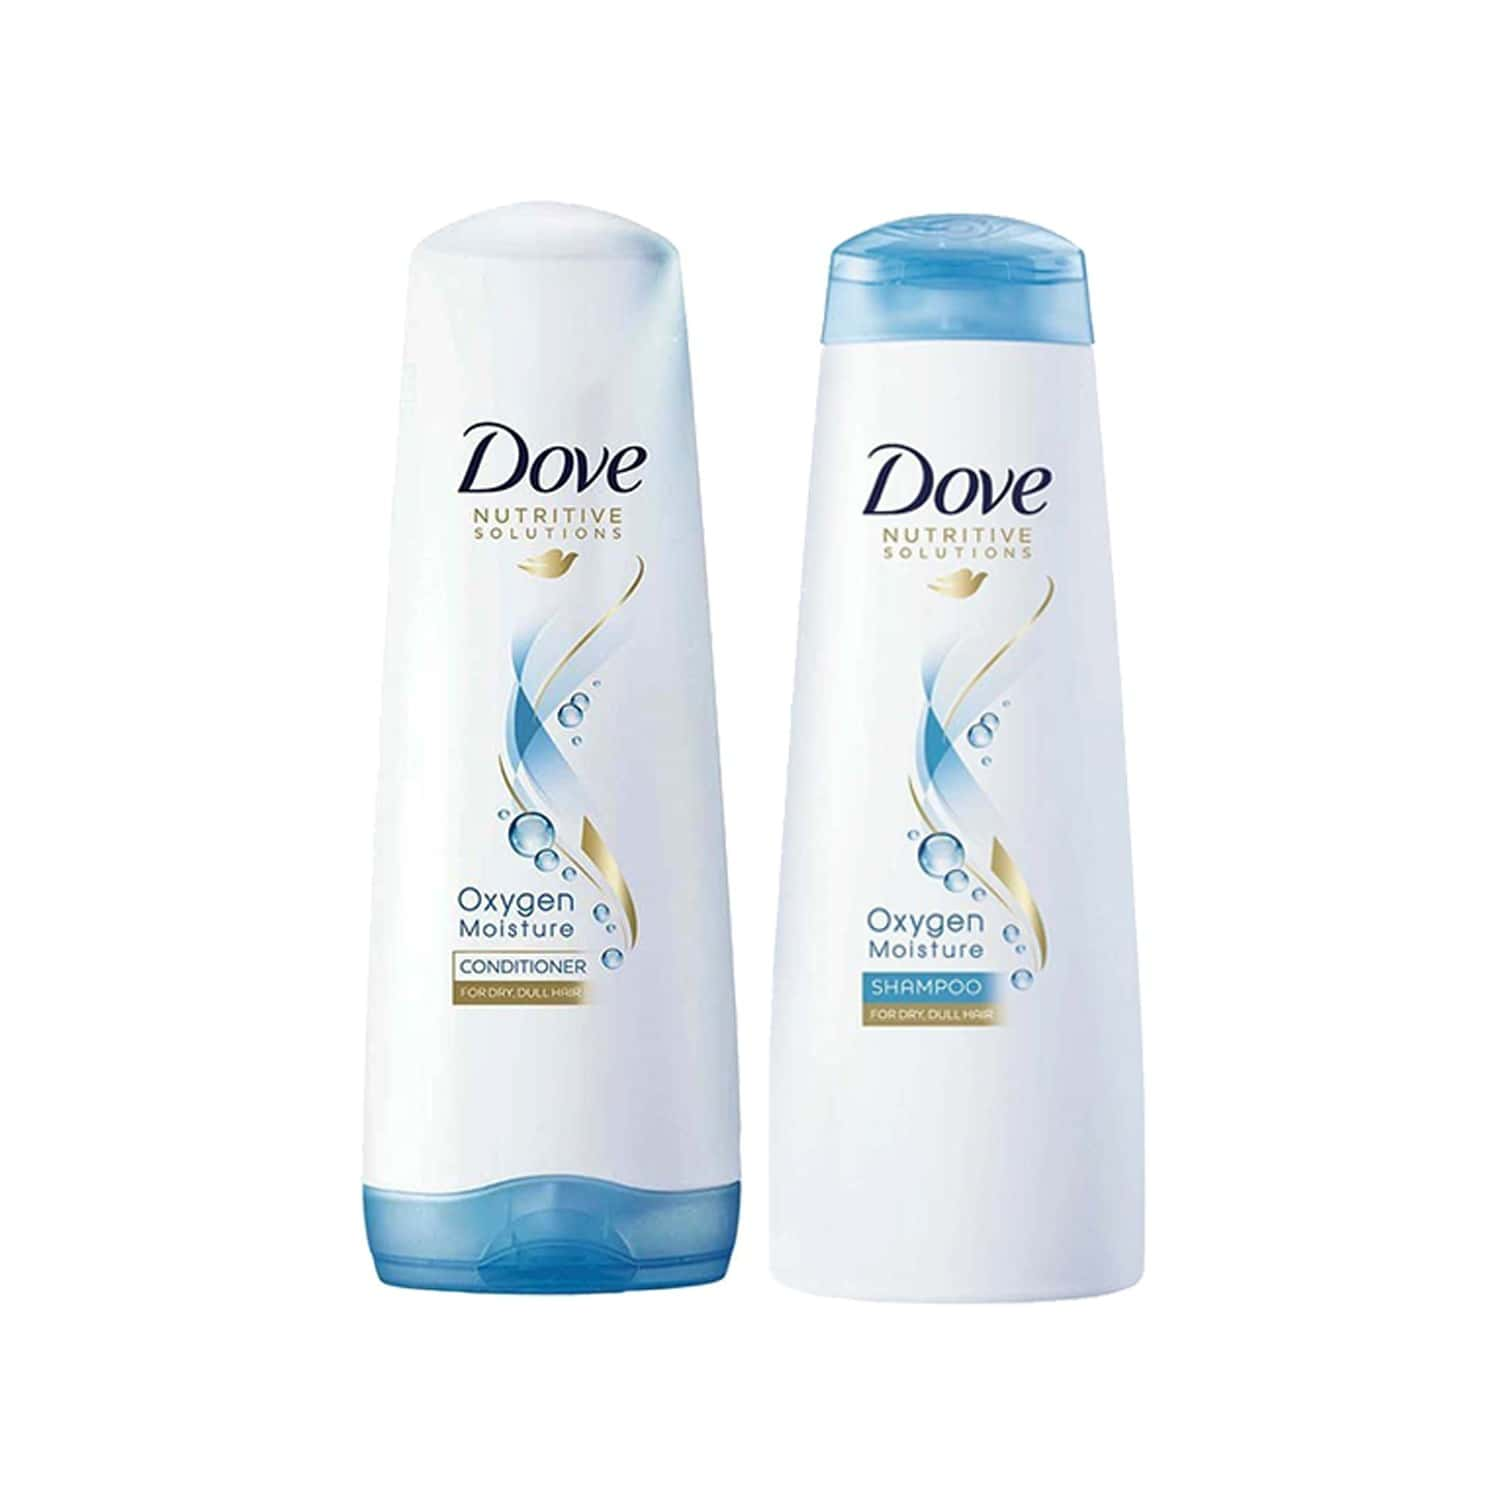 Dove Oxygen Moisture Value Pack (shampoo And Conditioner)